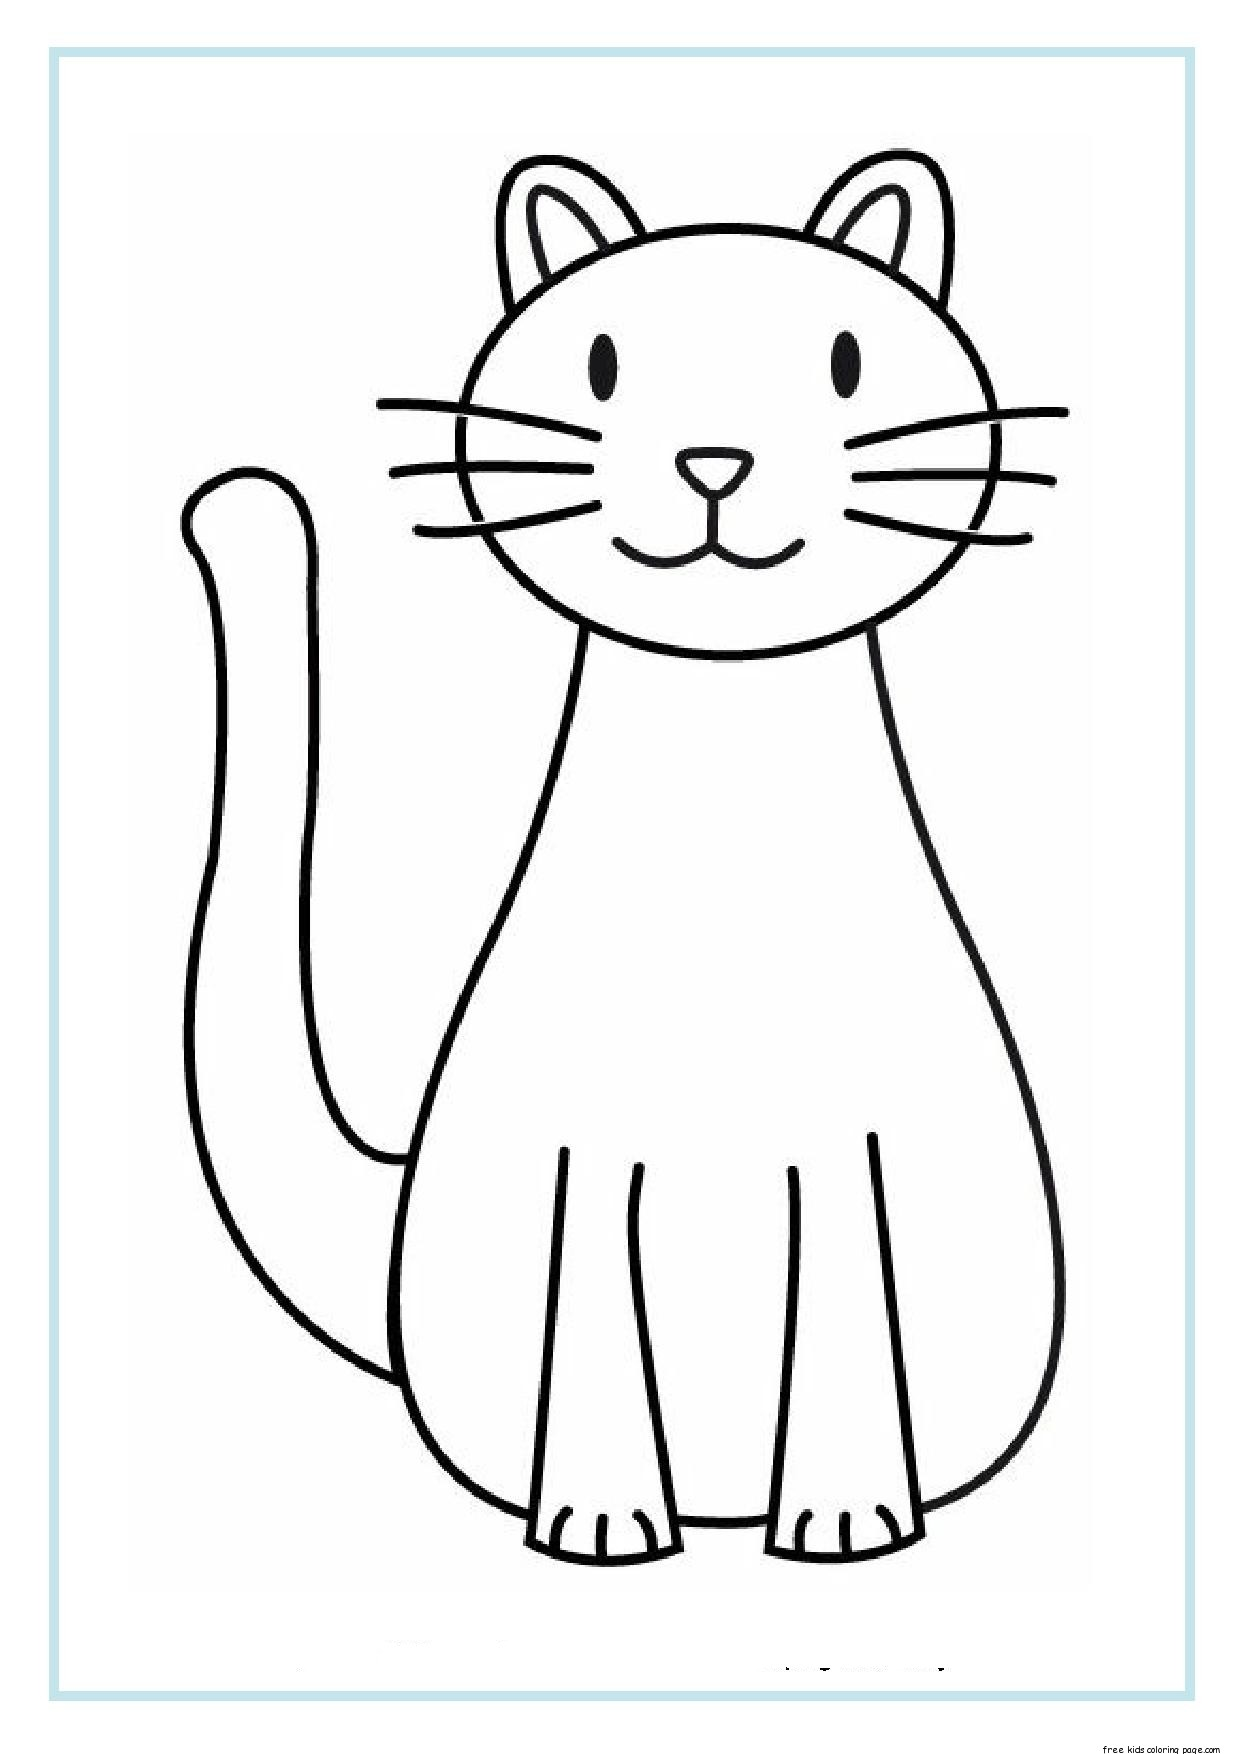 Coloring Pages For Kids Printable : Printable cat coloring sheets for kidsfree